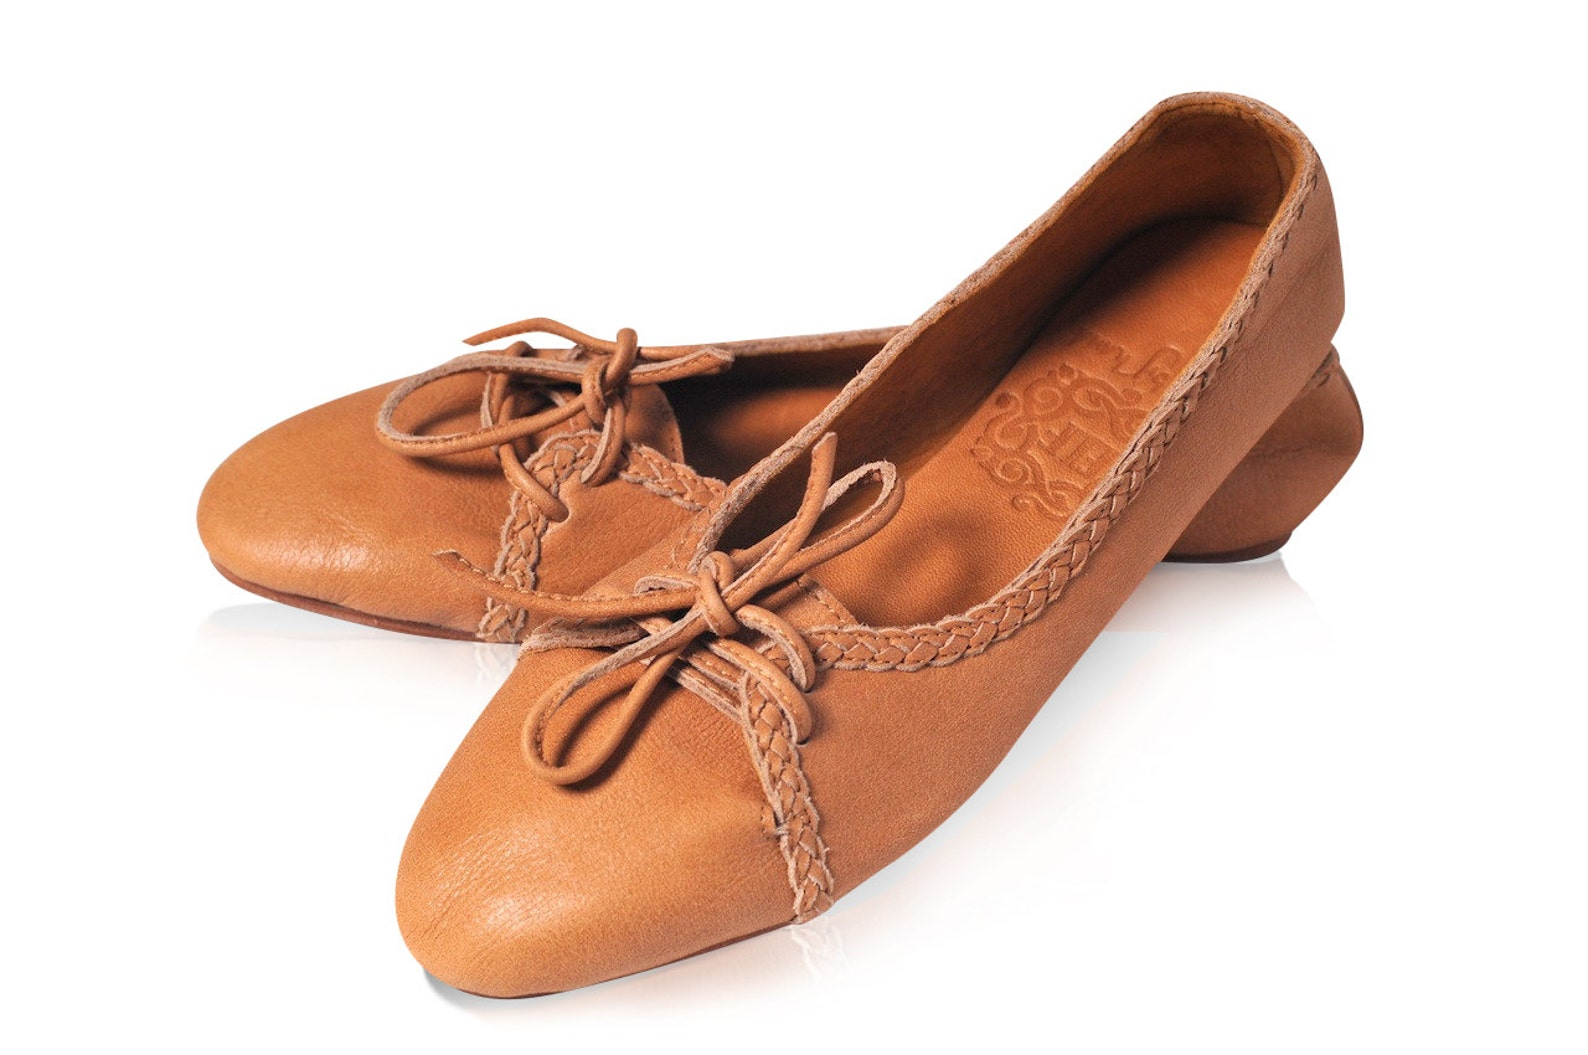 sasha. leather ballet flats / womens leather loafers / leather flats shoes / womens shoes / lace up shoes. womens flat shoes. si